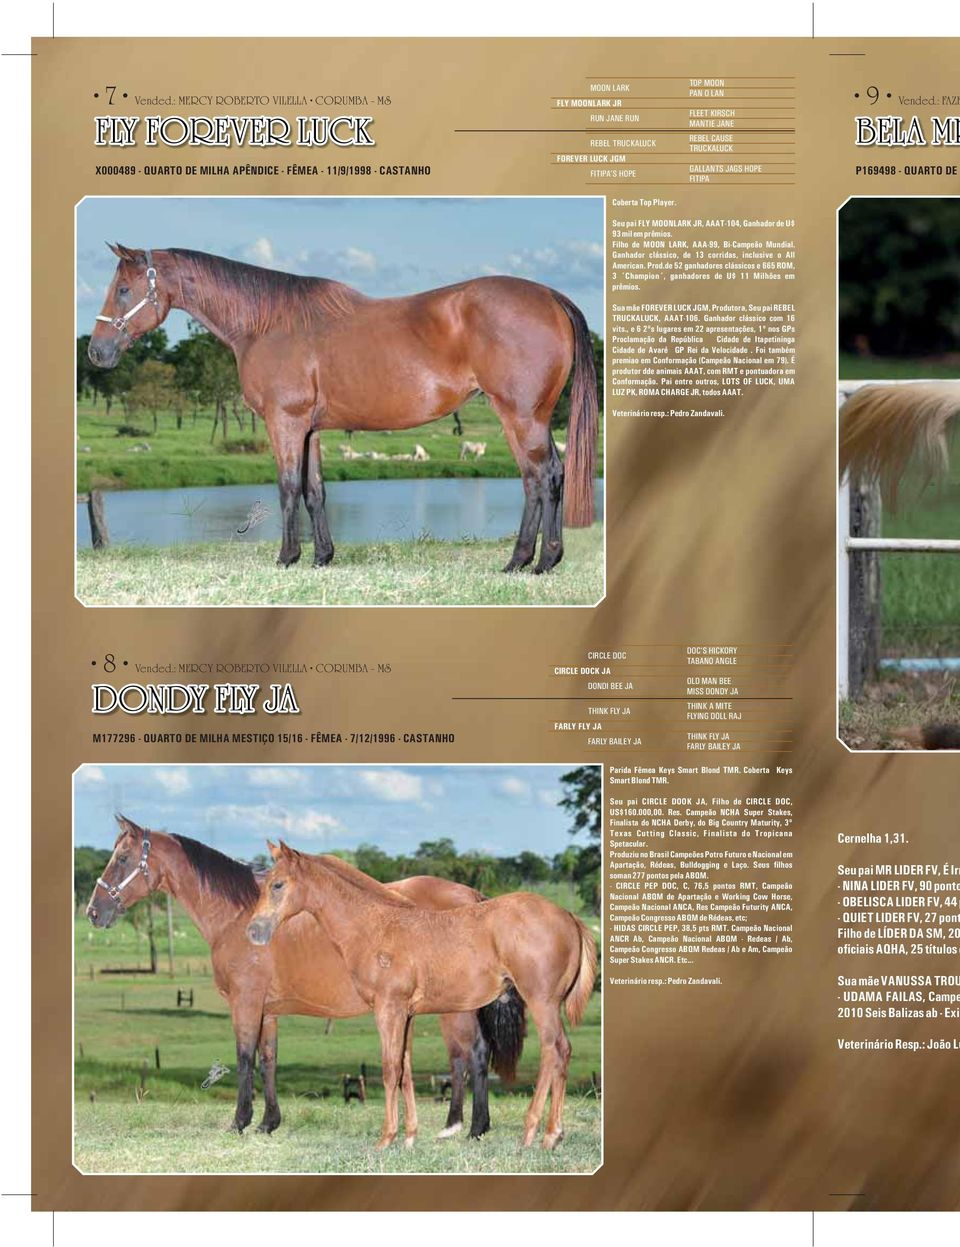 FITIPA'S HOPE TOP MOON PAN O LAN FLEET KIRSCH MANTIE JANE REBEL CAUSE TRUCKALUCK GALLANTS JAGS HOPE FITIPA 9 Vended.: FAZE BELA MR P169498 - QUARTO DE Coberta Top Player.